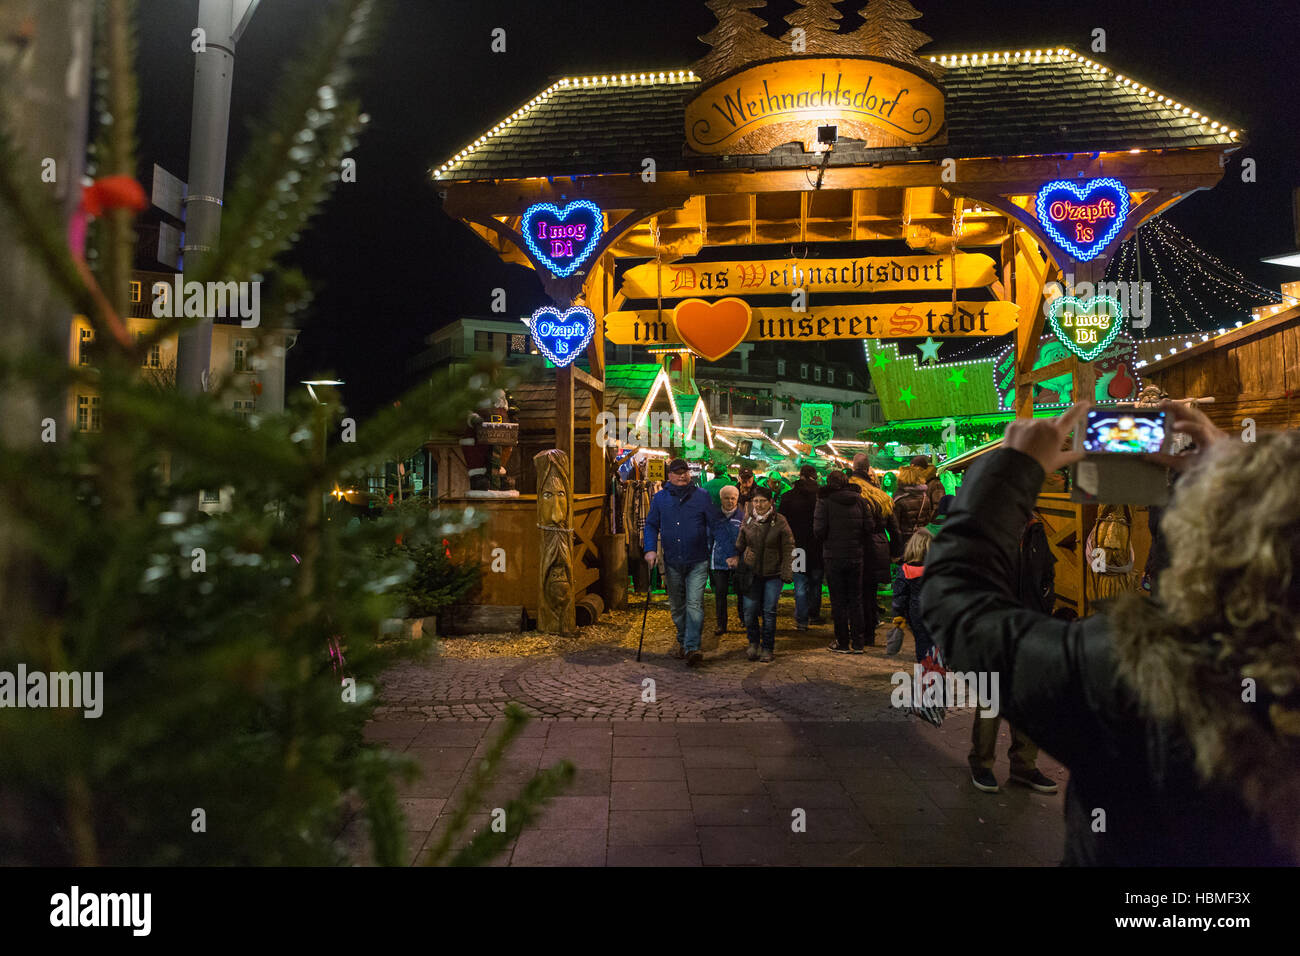 The Christmas market in Mönchengladbach, Germany - Stock Image